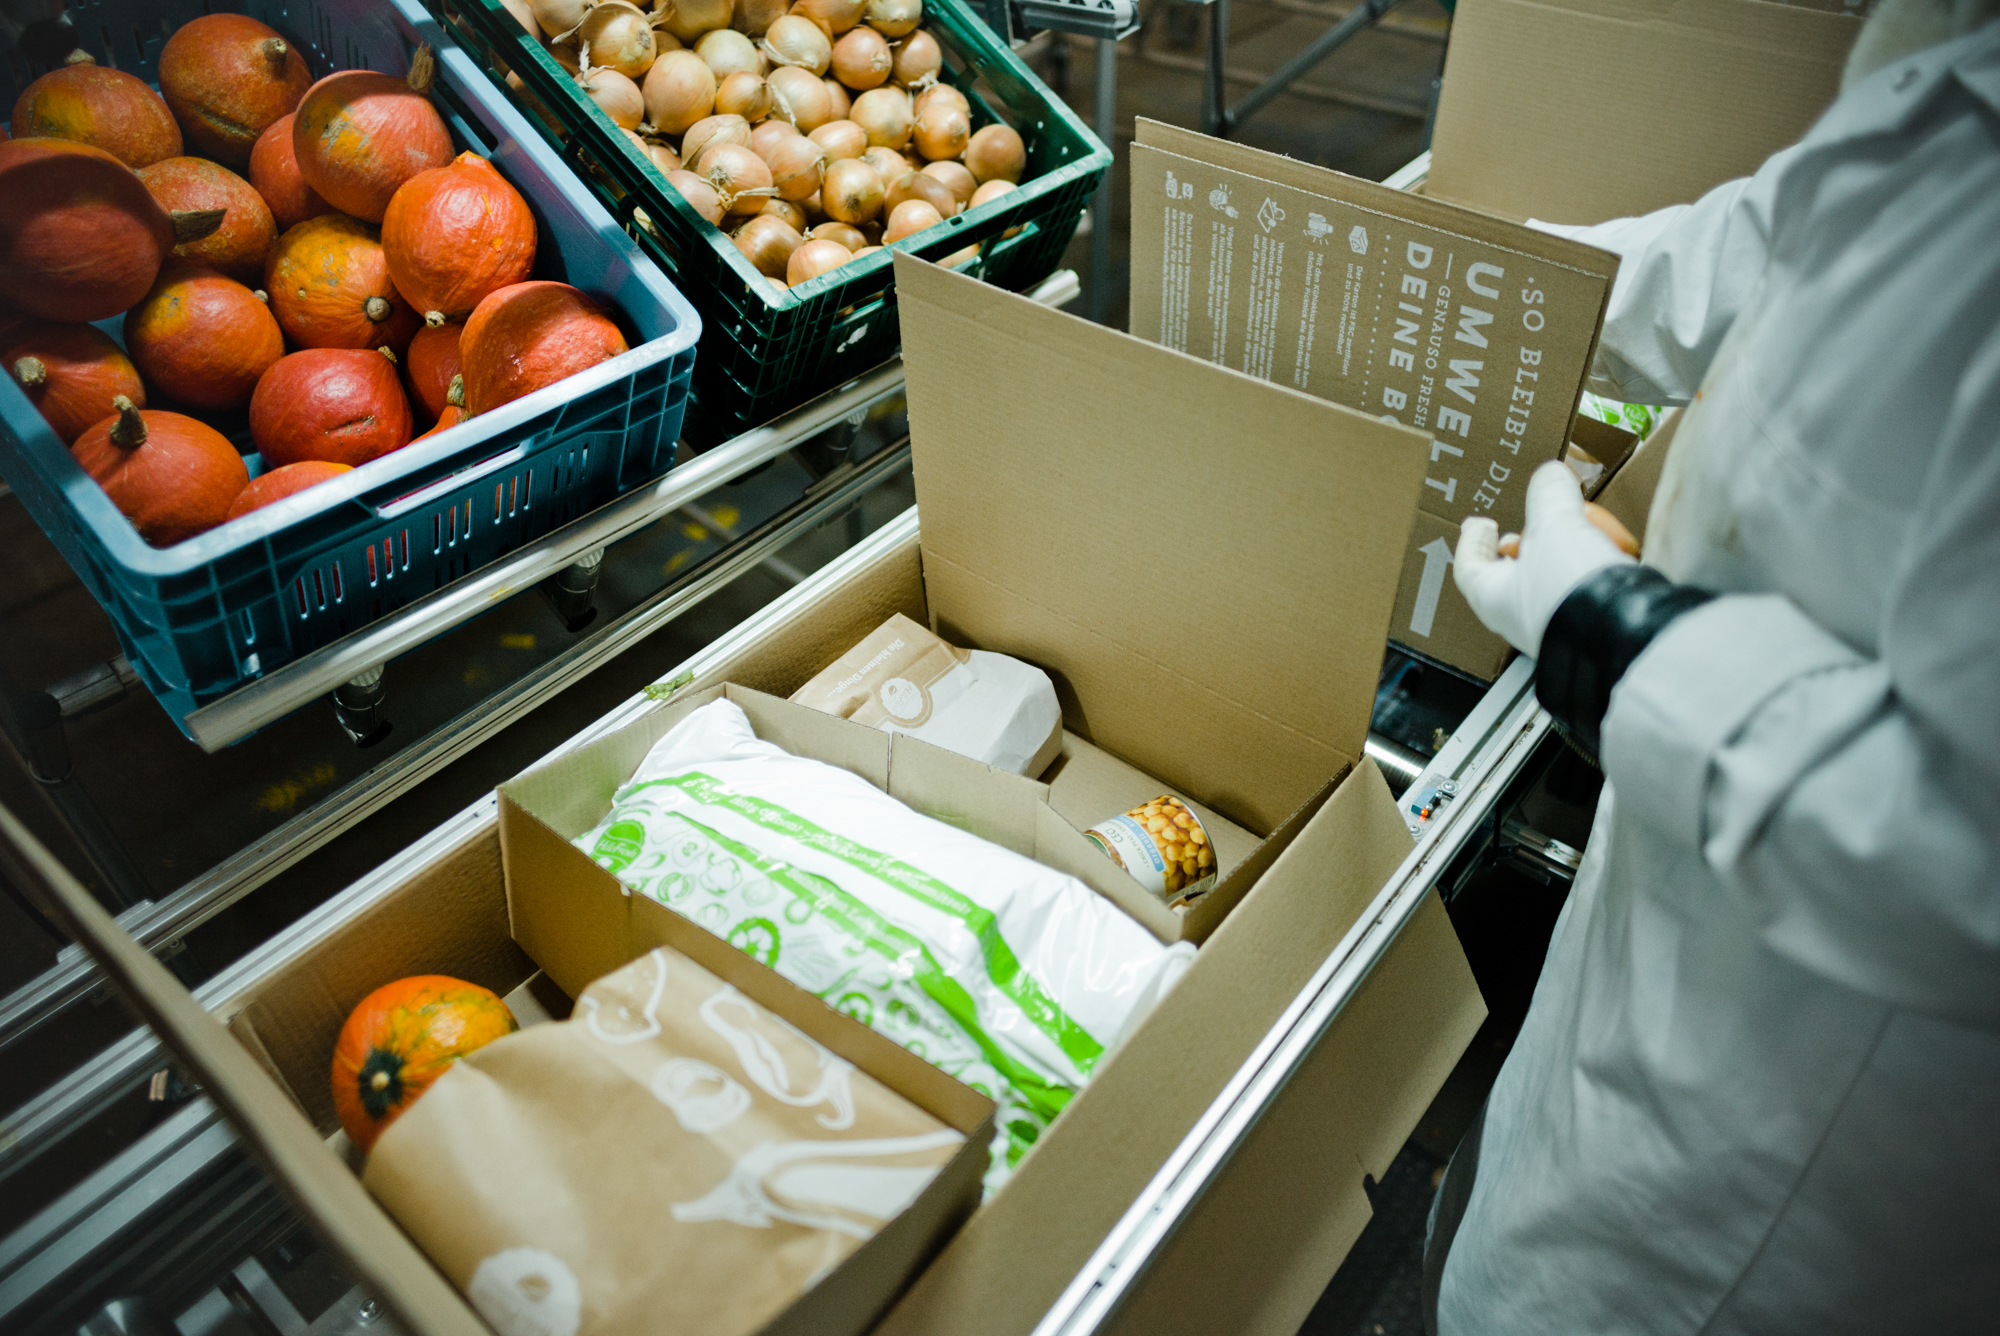 A worker packing a HelloFresh box with food